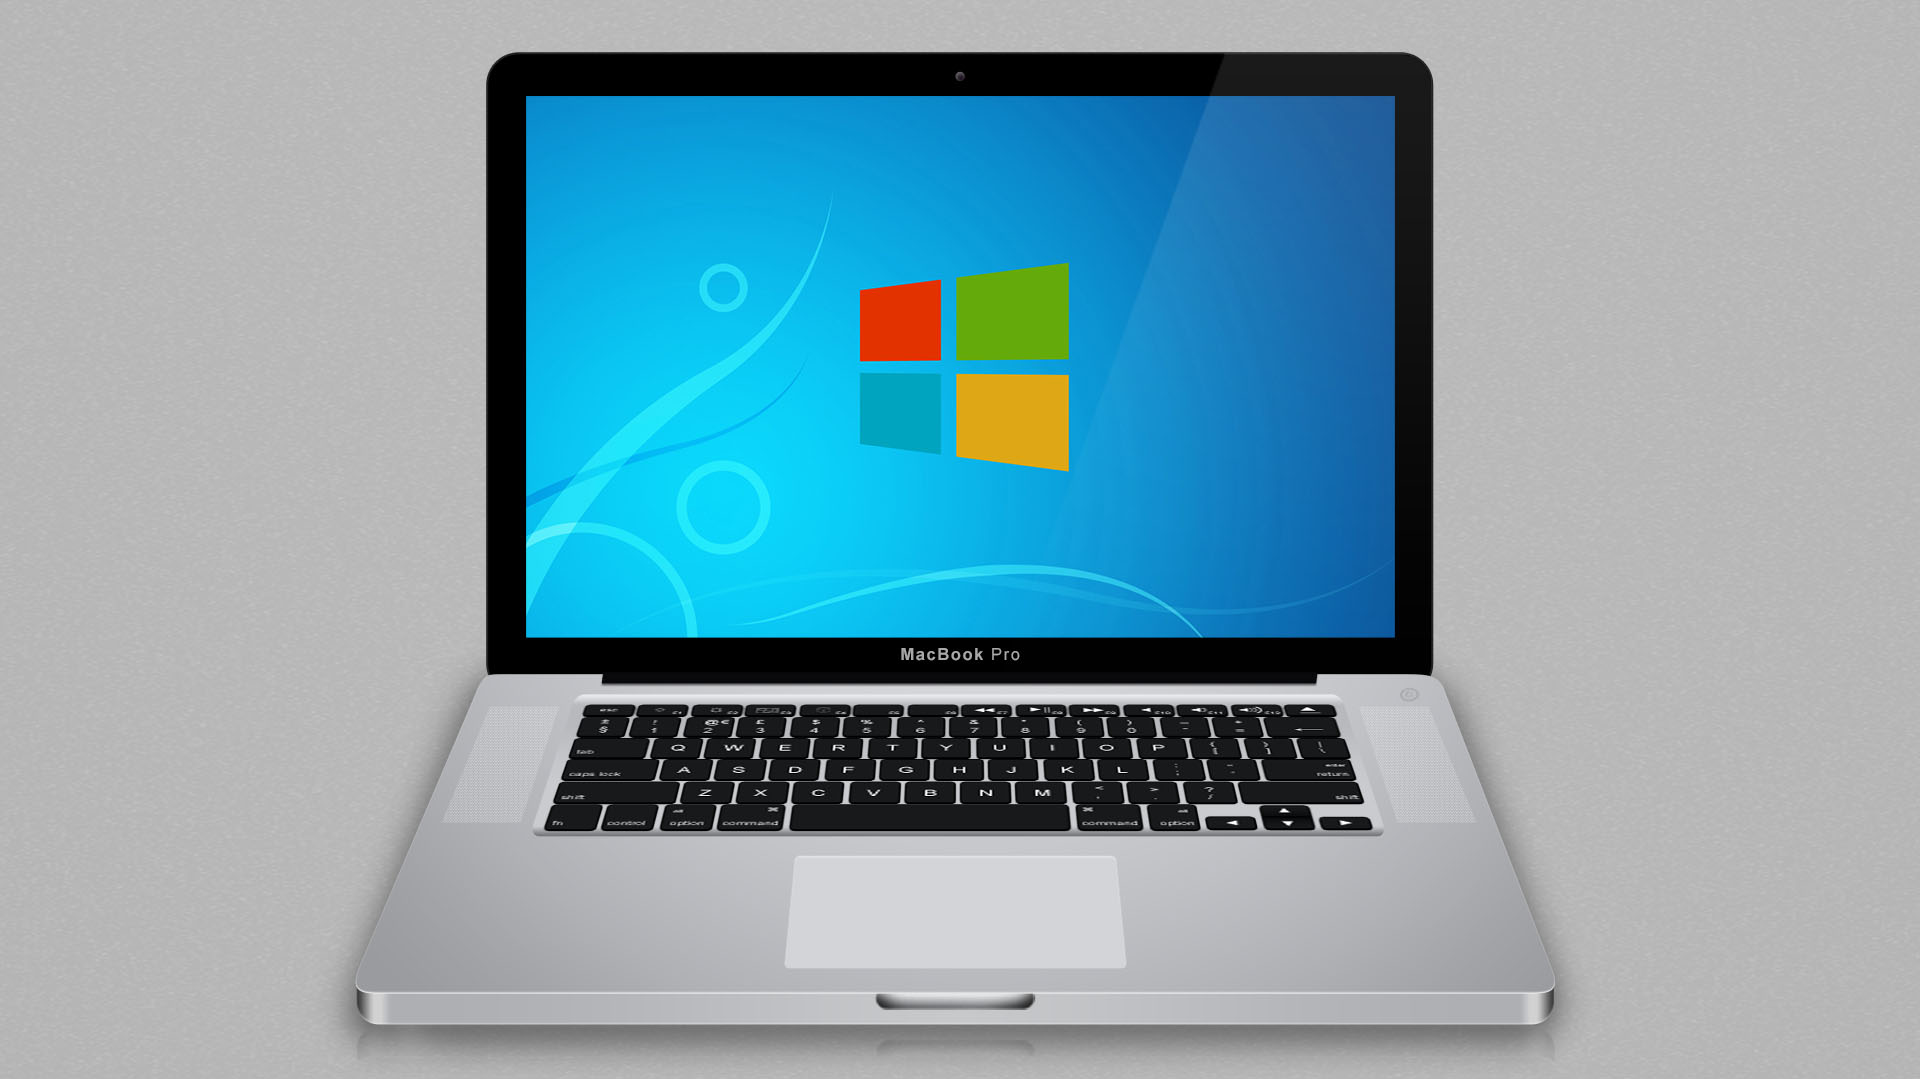 macbook-pro-boot-camp-windows